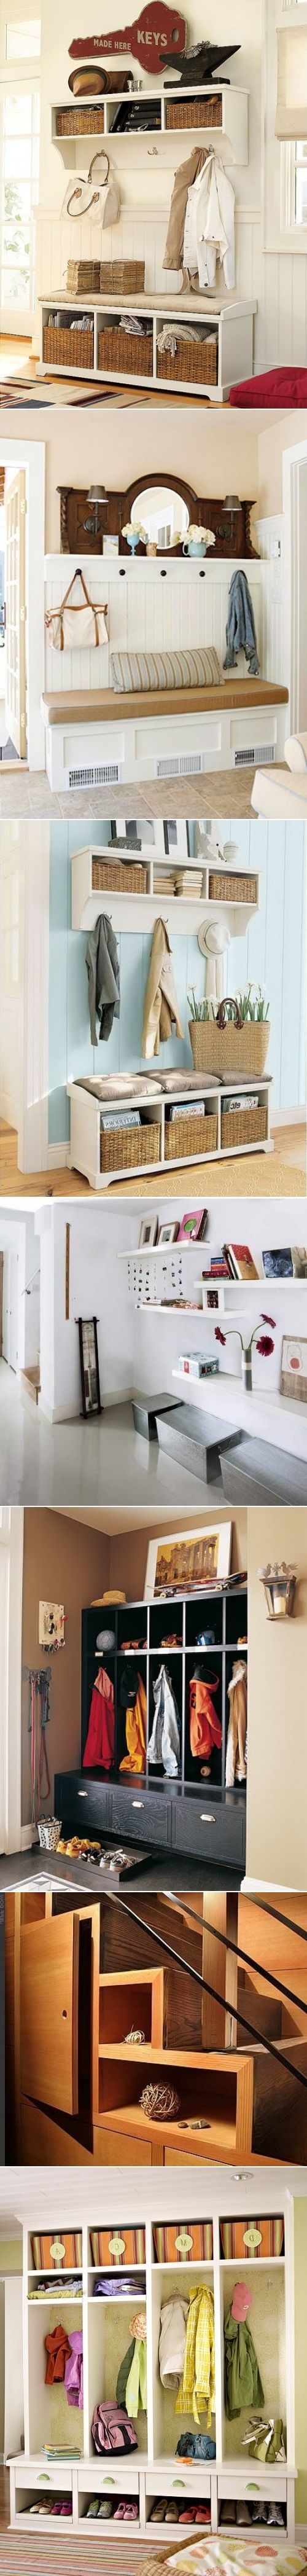 DIY Mudroom And Hallway Storage Ideas - when we get our own place I'm so doing…